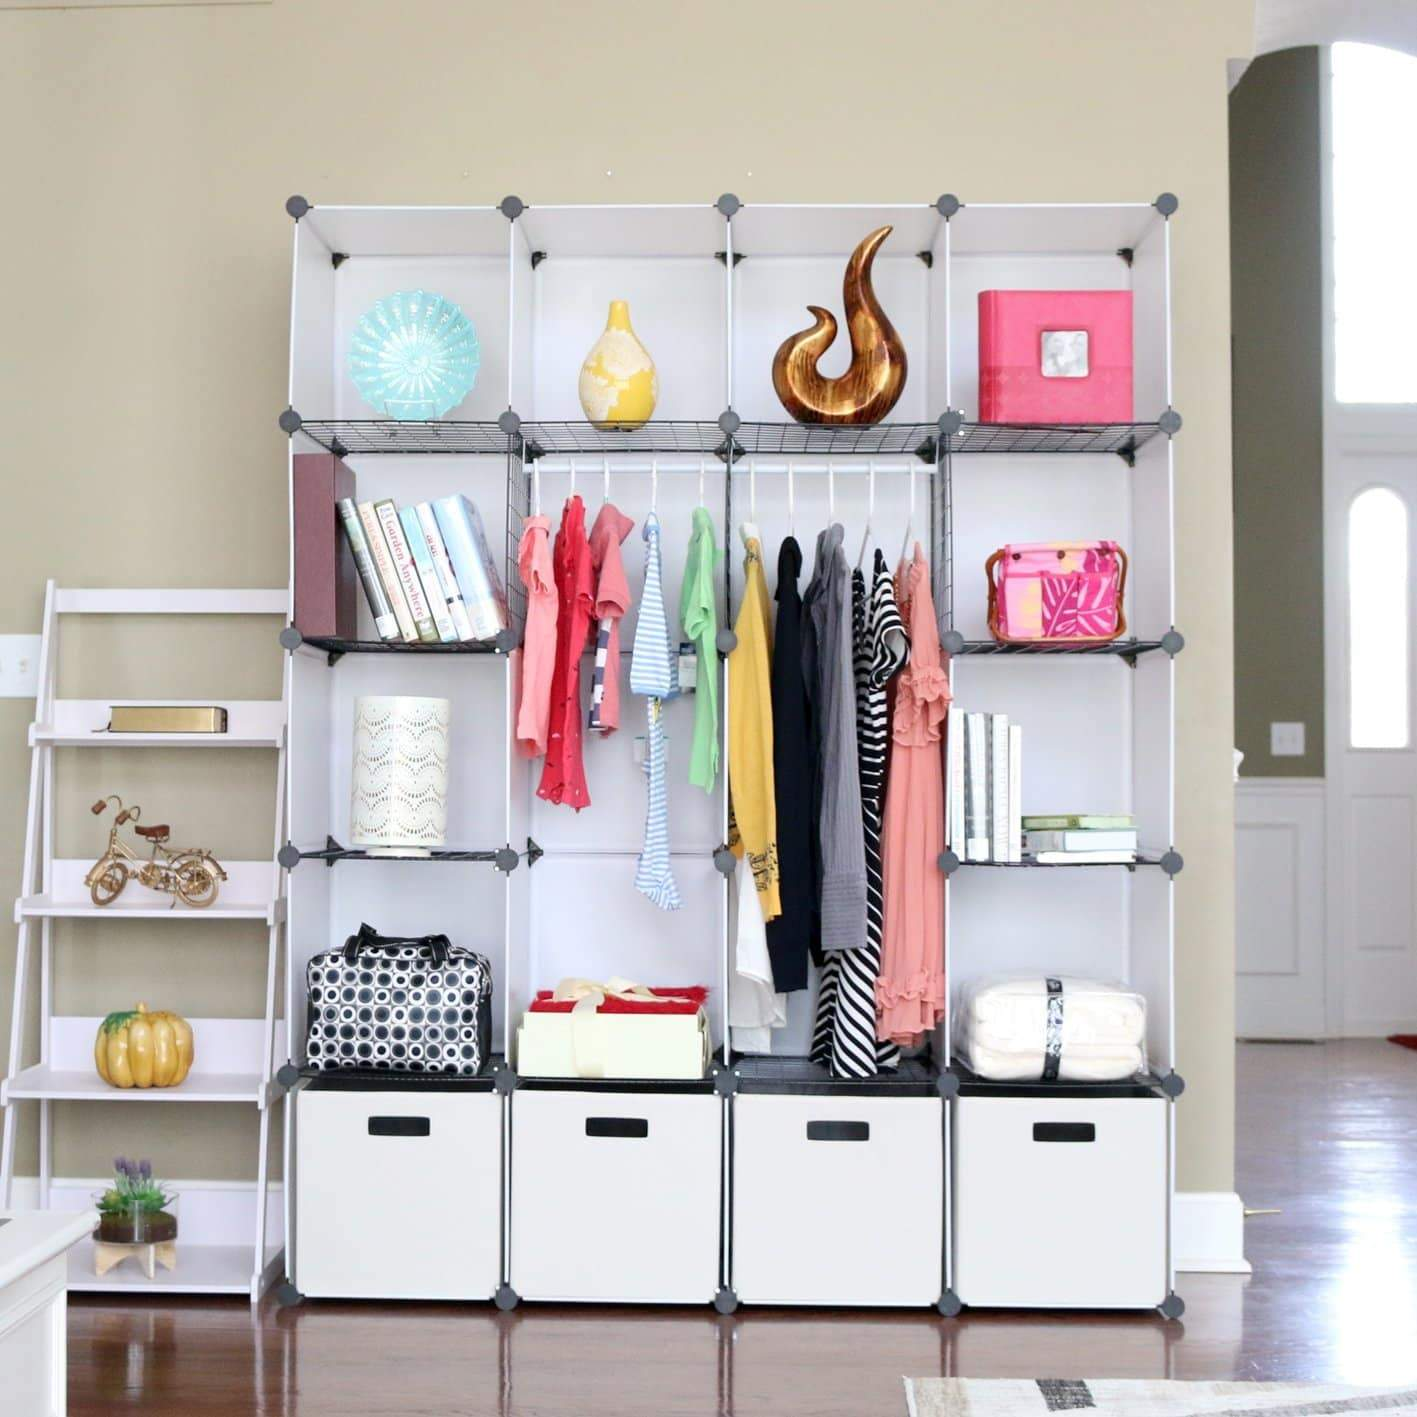 Featured unicoo diy 20 cube organizer cube storage bookcase toy organizer storage cabinet wardrobe closet deeper cube white